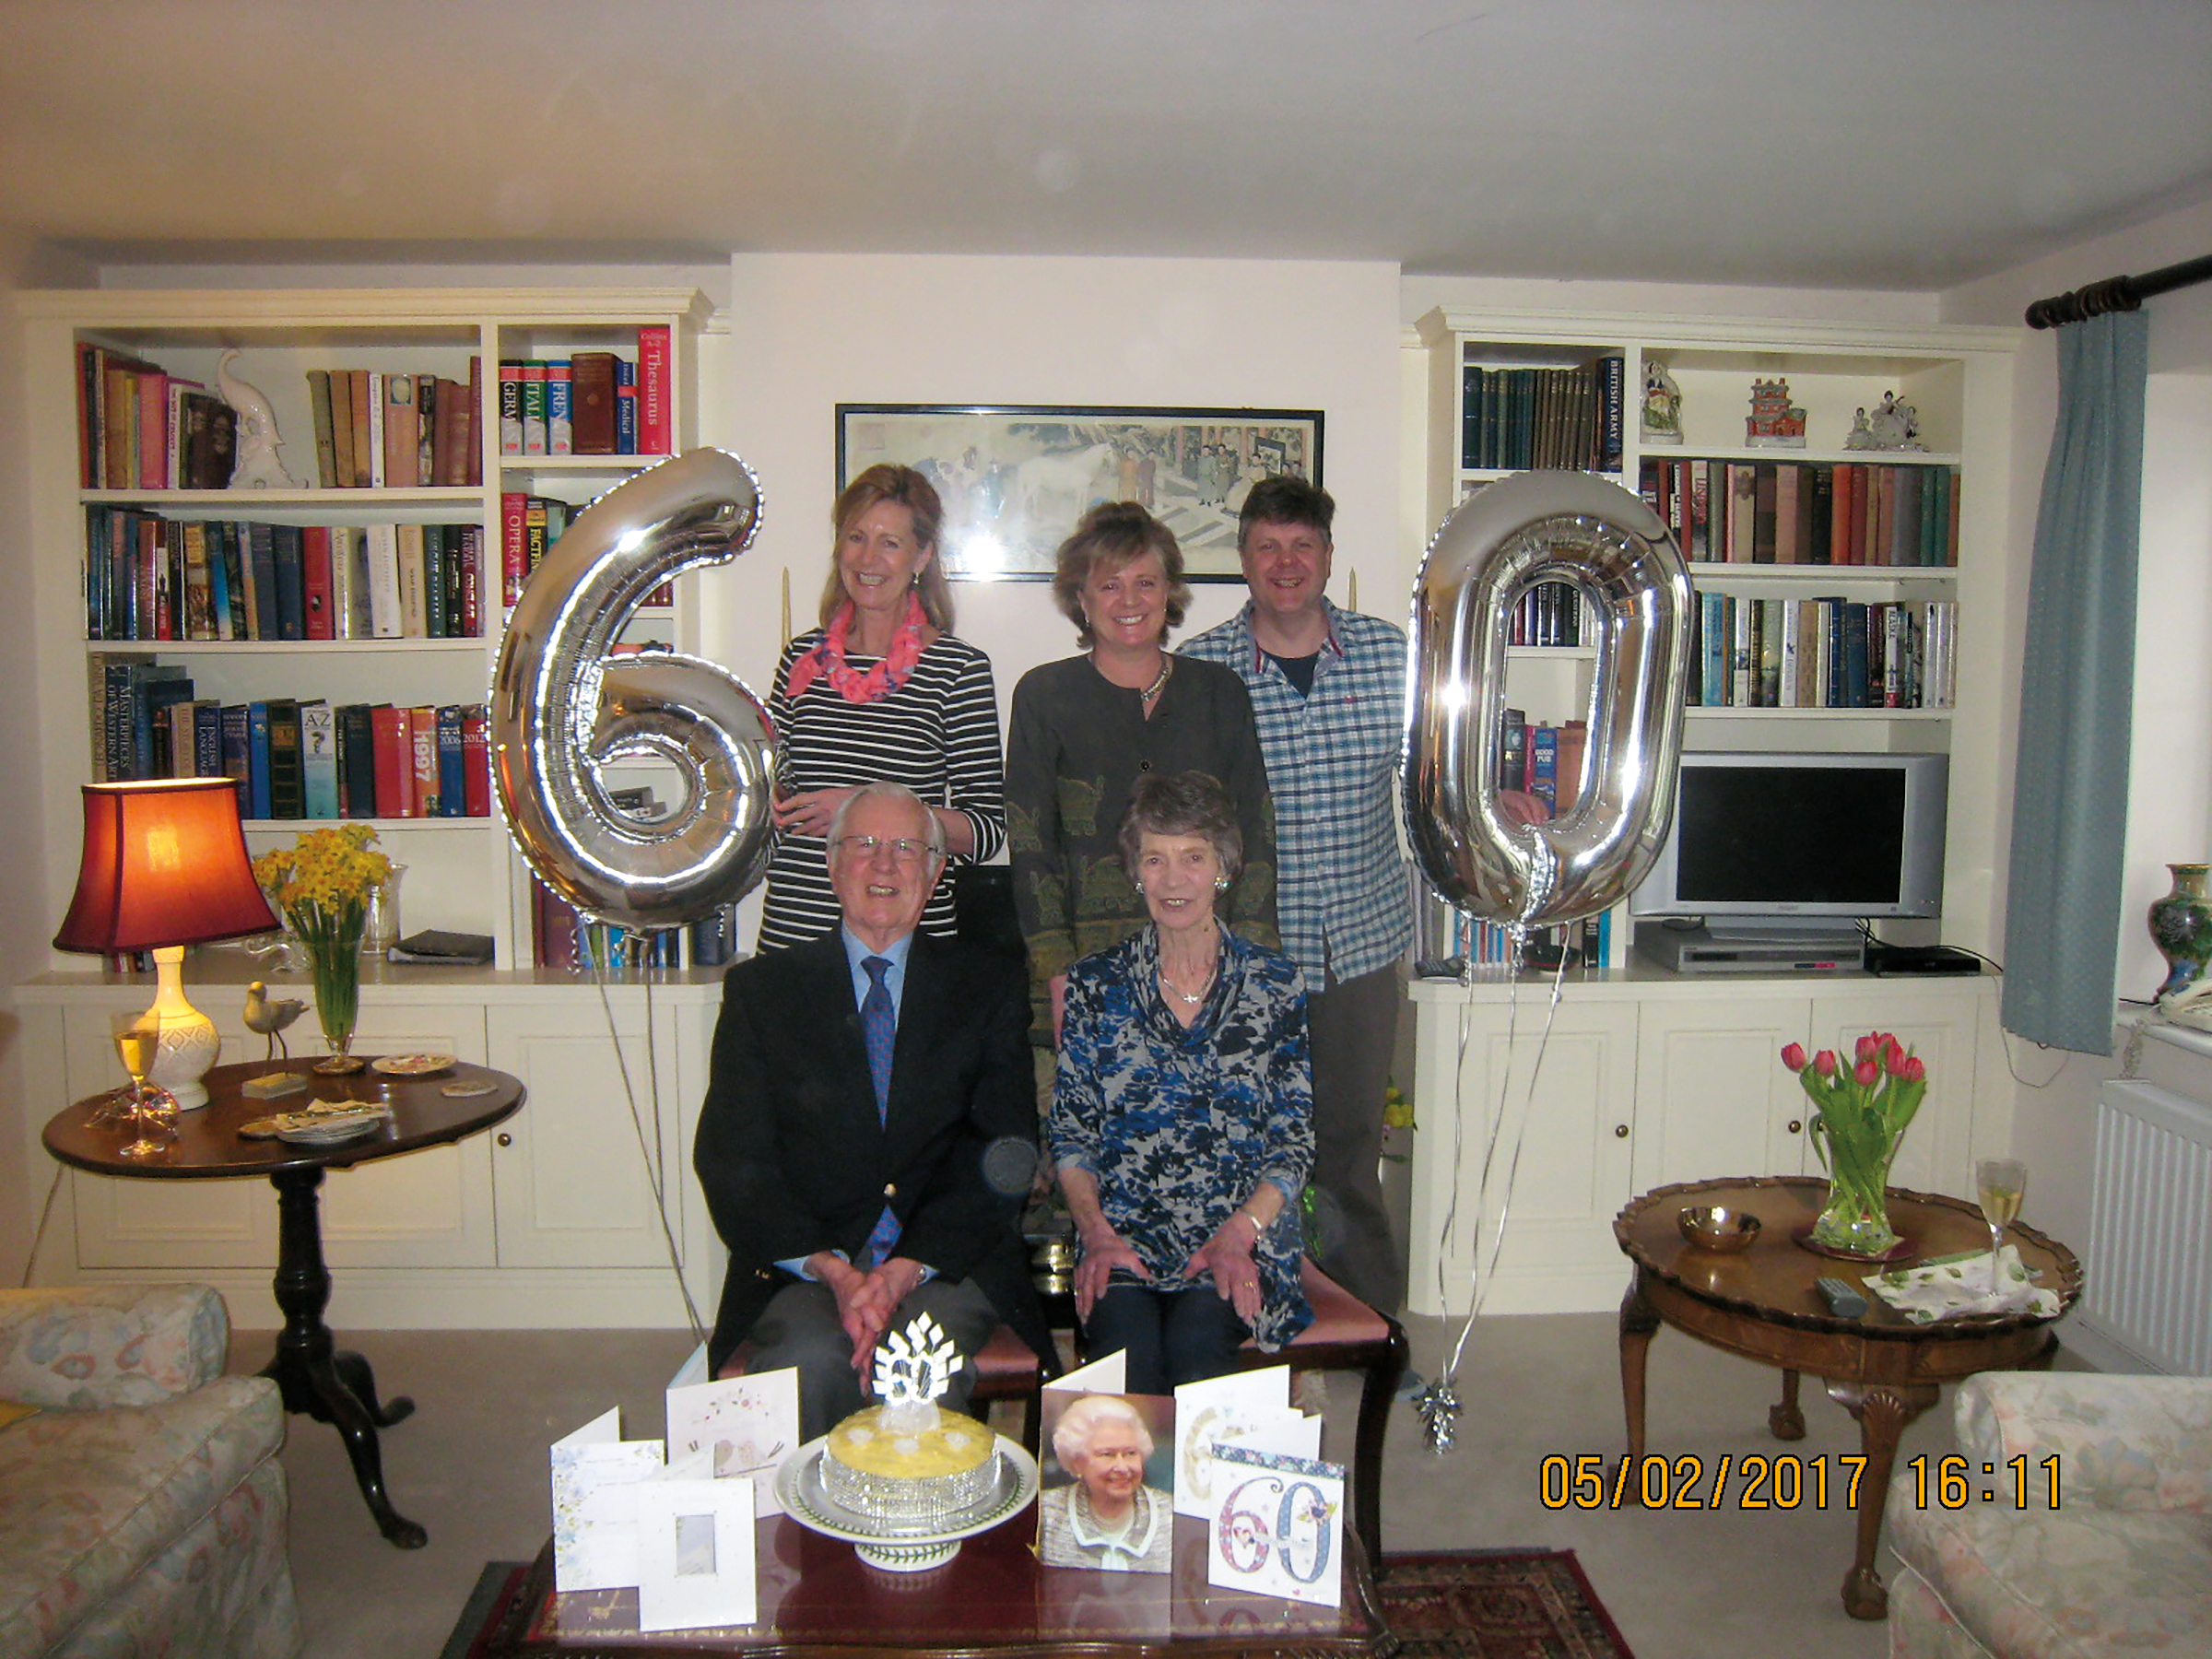 James Stockley '46 celebrated his 60th wedding anniversary with his wife, Pearl, and children, Philippa, Amanda, and Robin.